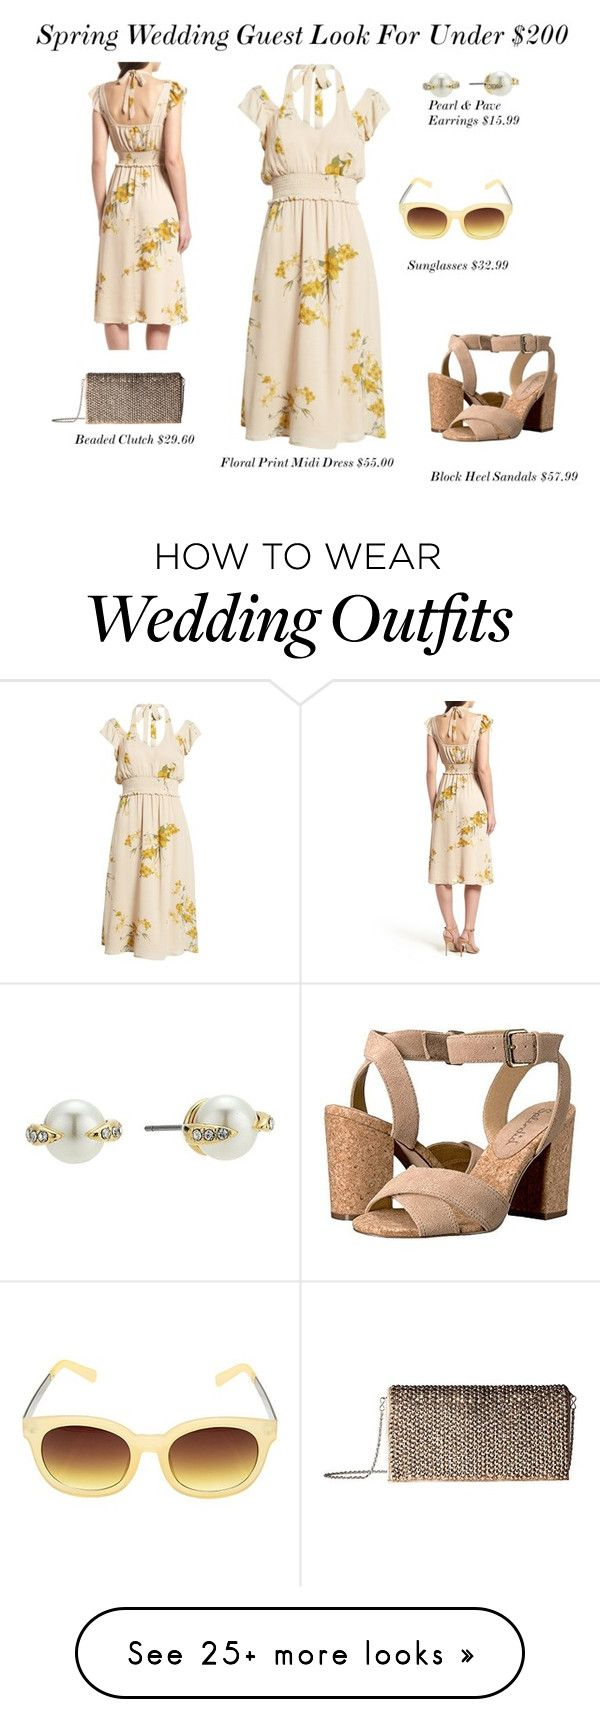 """Spring Wedding Guest Look For Under $200.00!"" by stylebyjonathan on Polyvore featuring June & Hudson, Steve Madden and Vince Camuto"